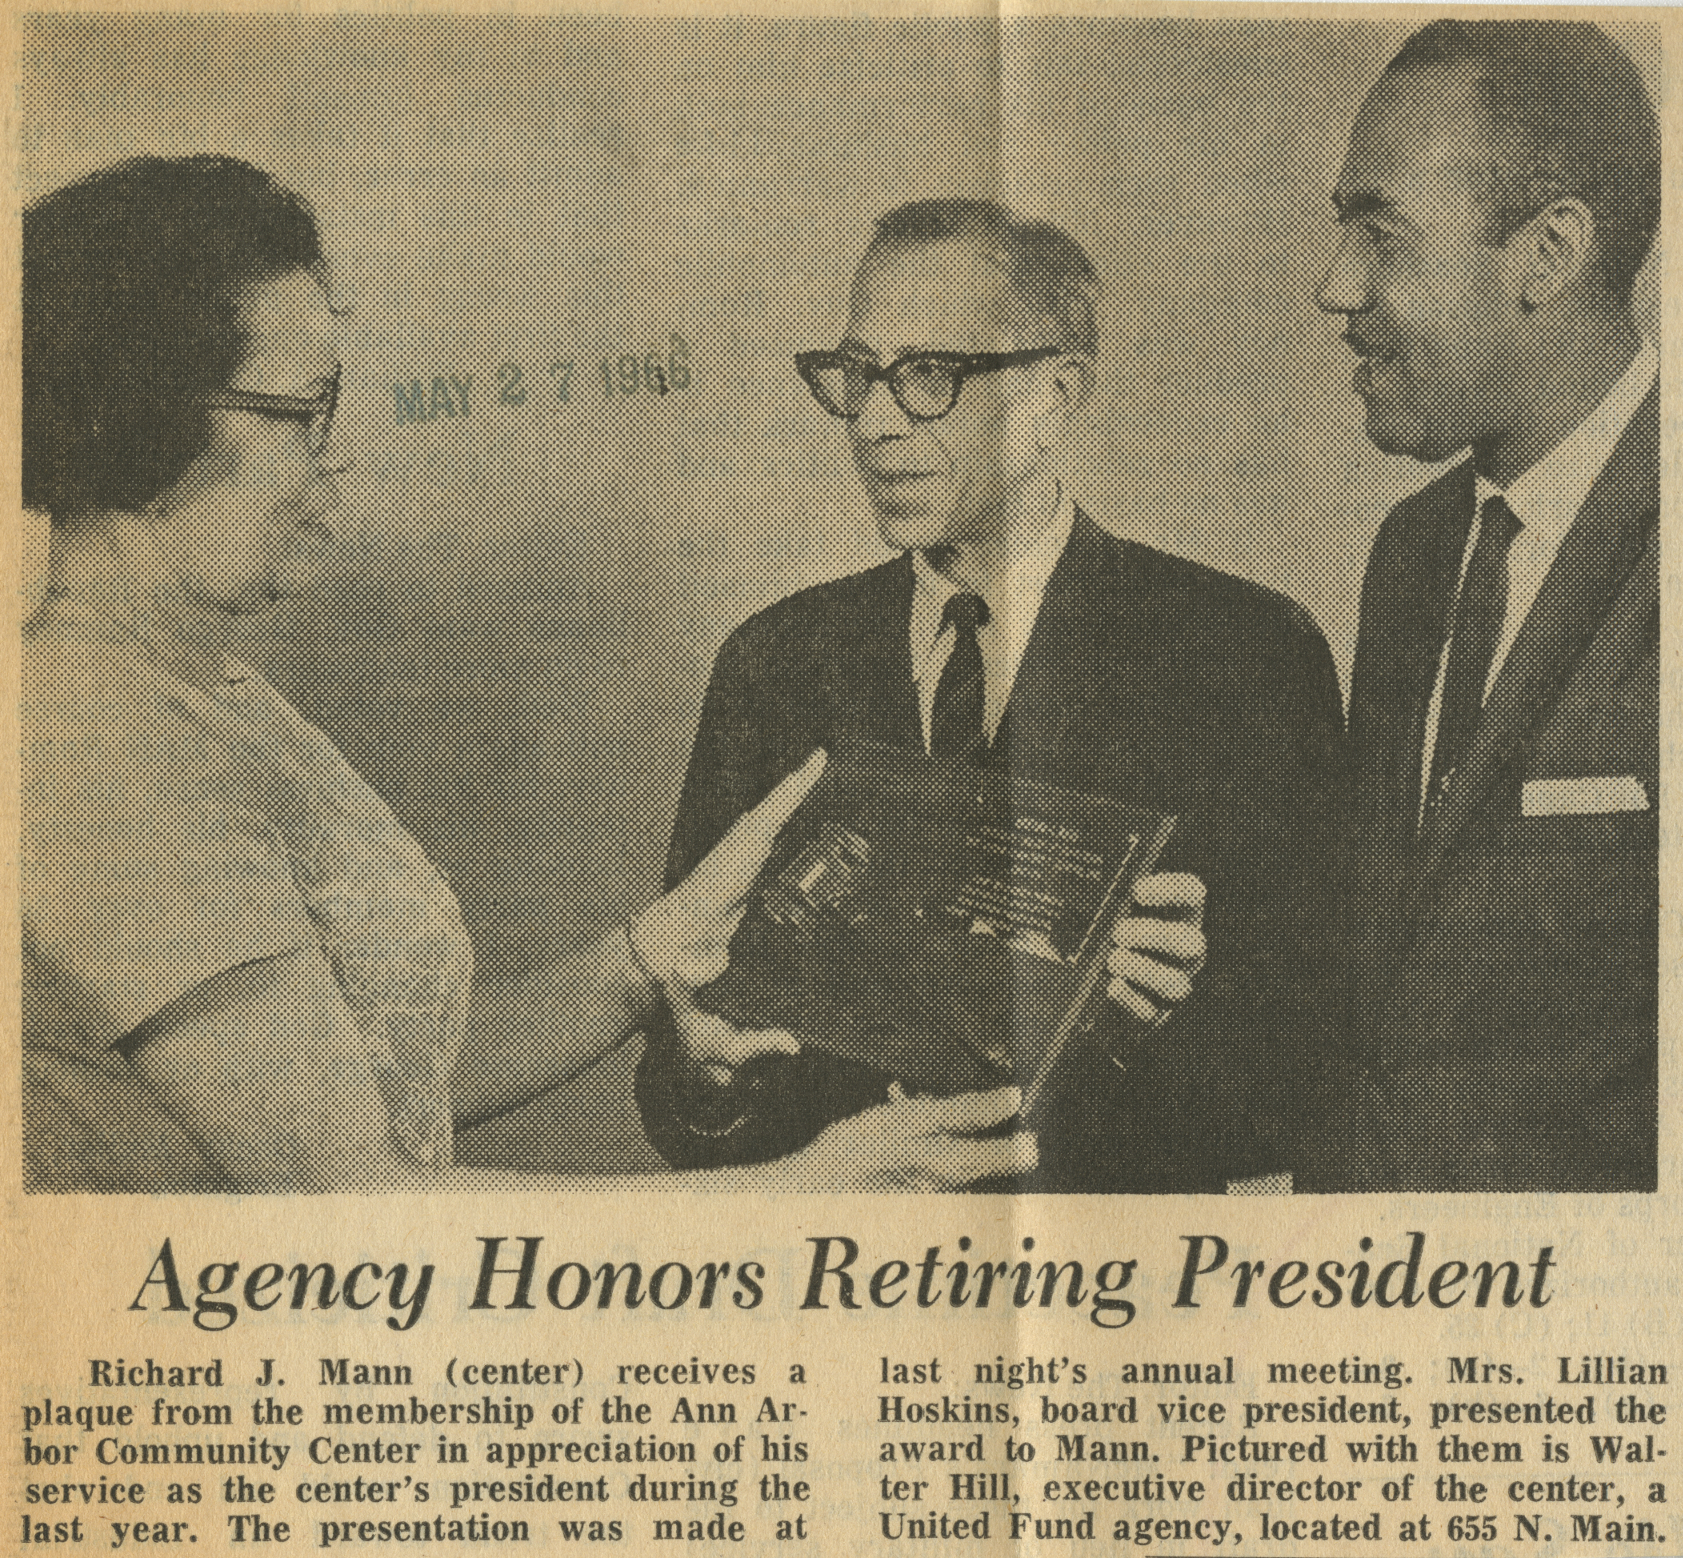 Agency Honors Retiring President image